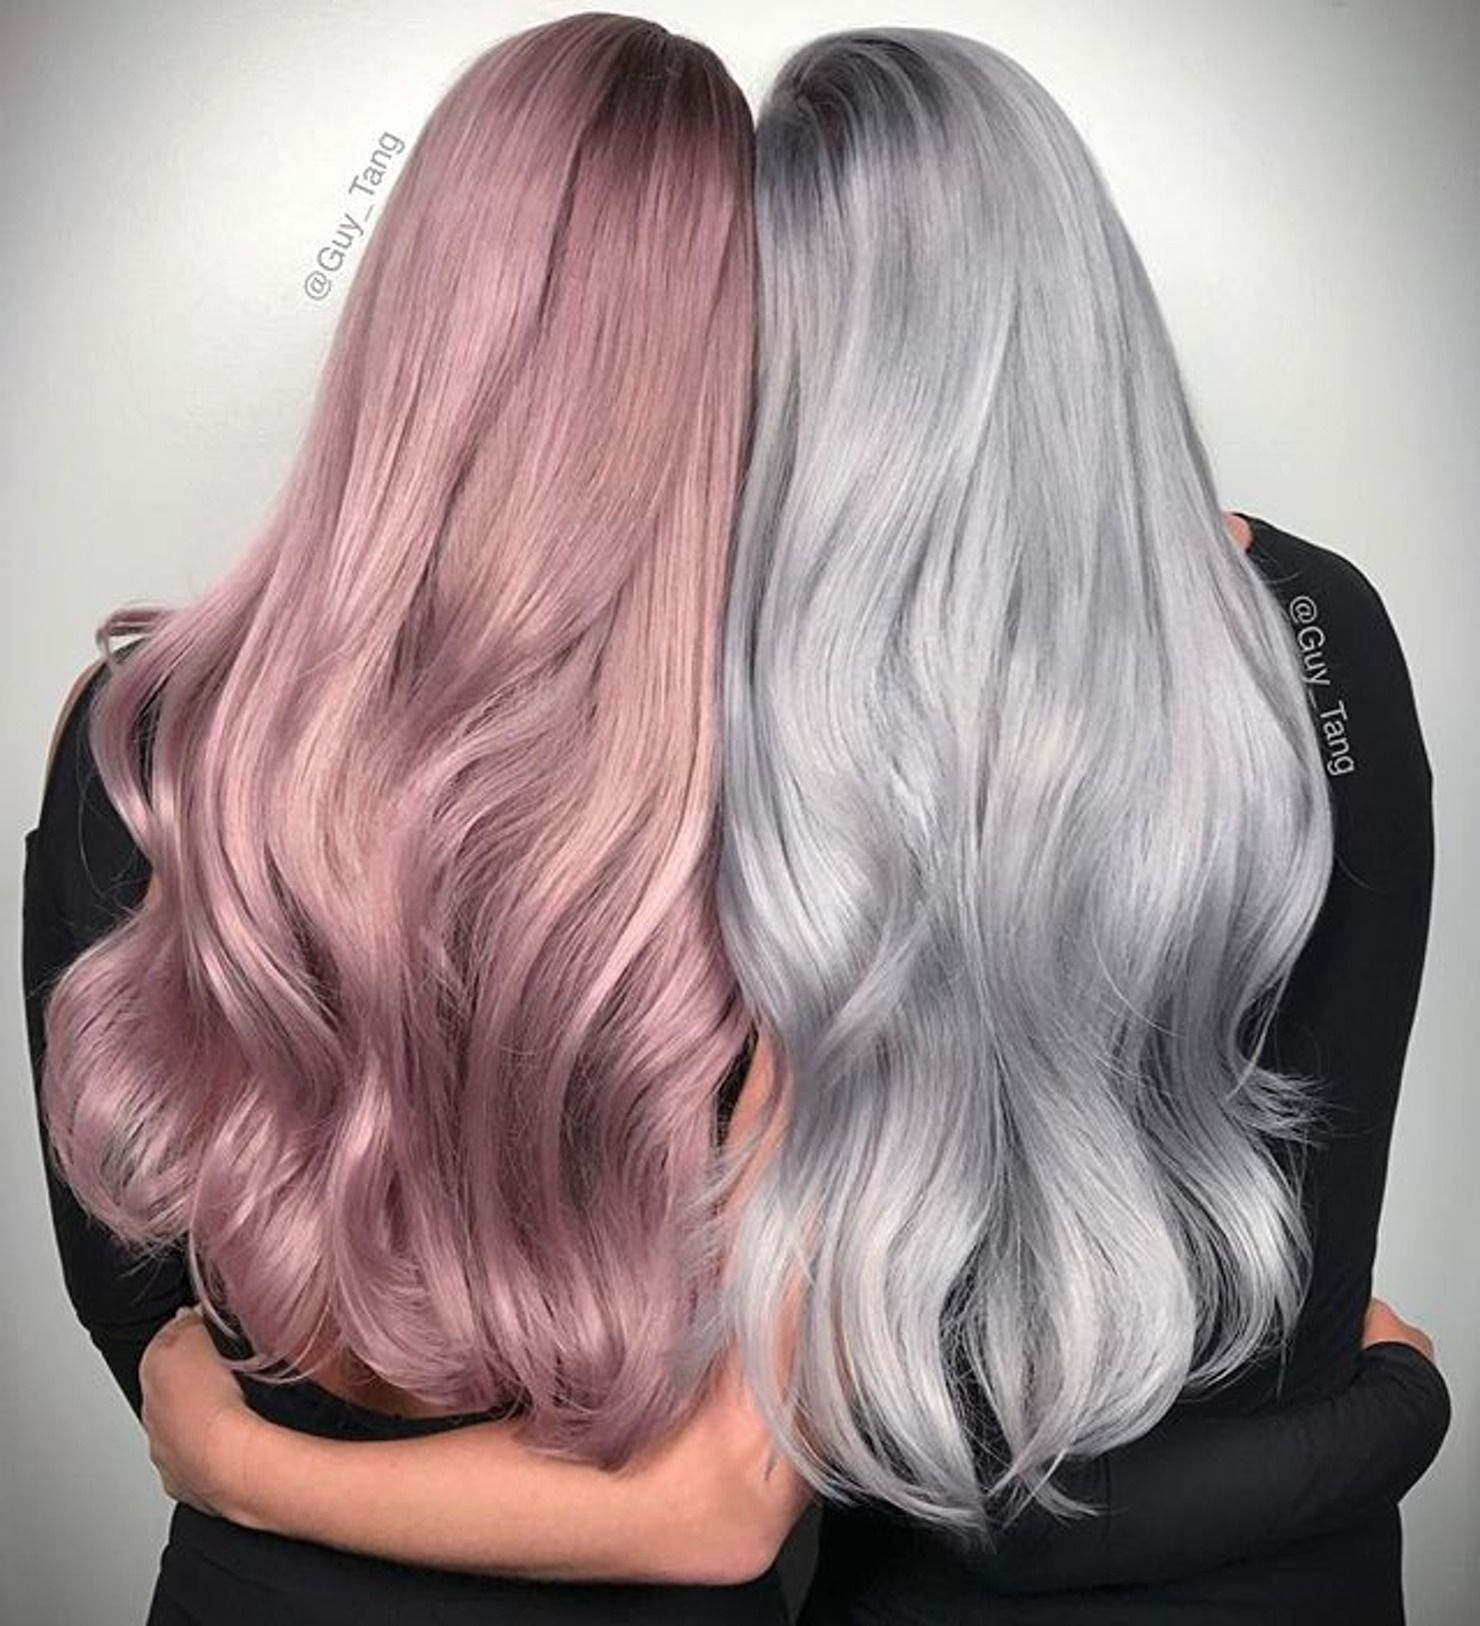 What's In Guy Tang's Hair Dye Collection? The Myde